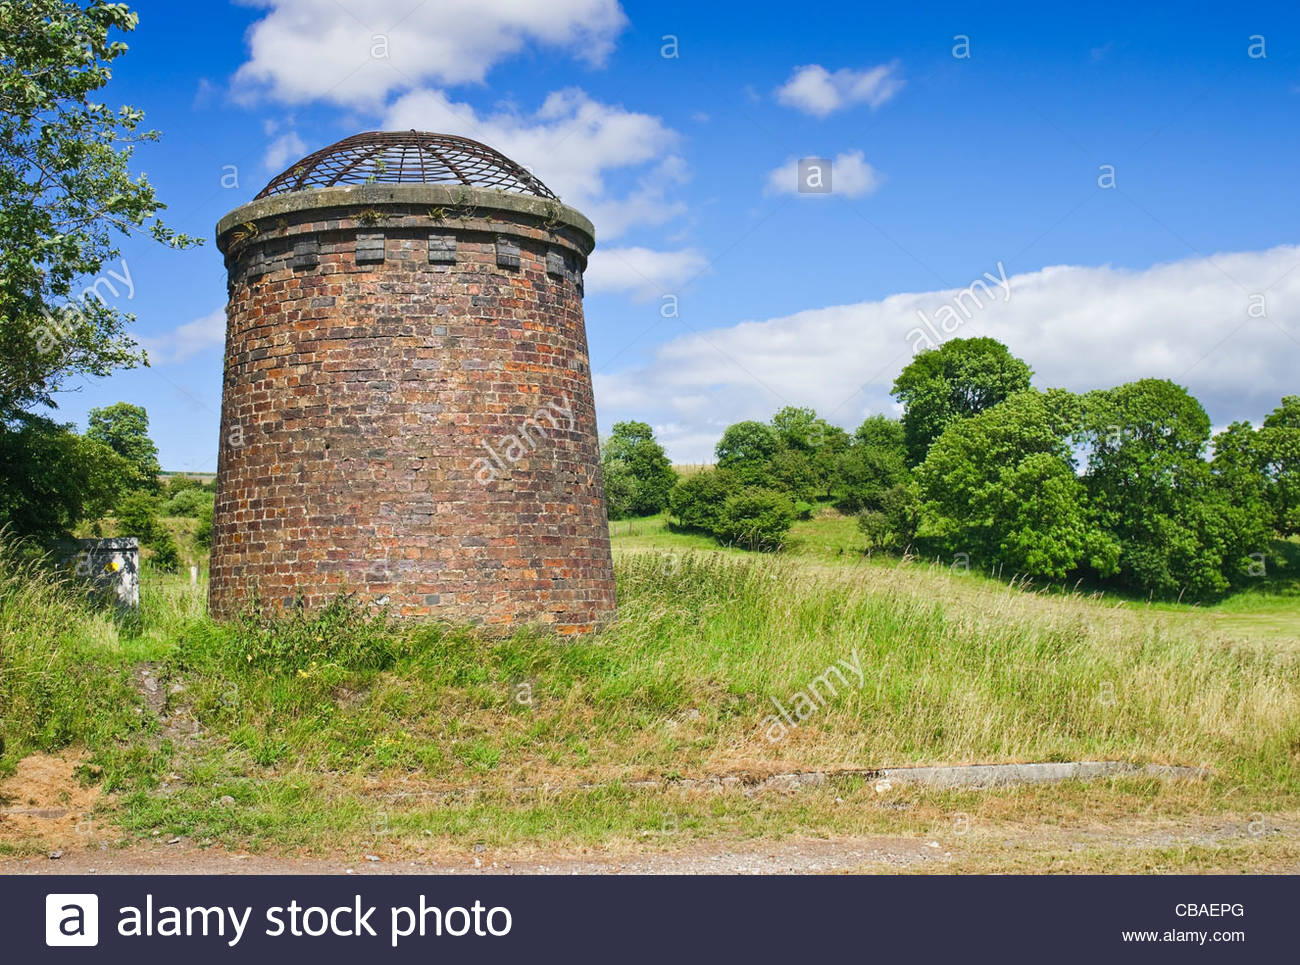 Railway tunnel ventilation shaft; Wales, UK - Stock Image